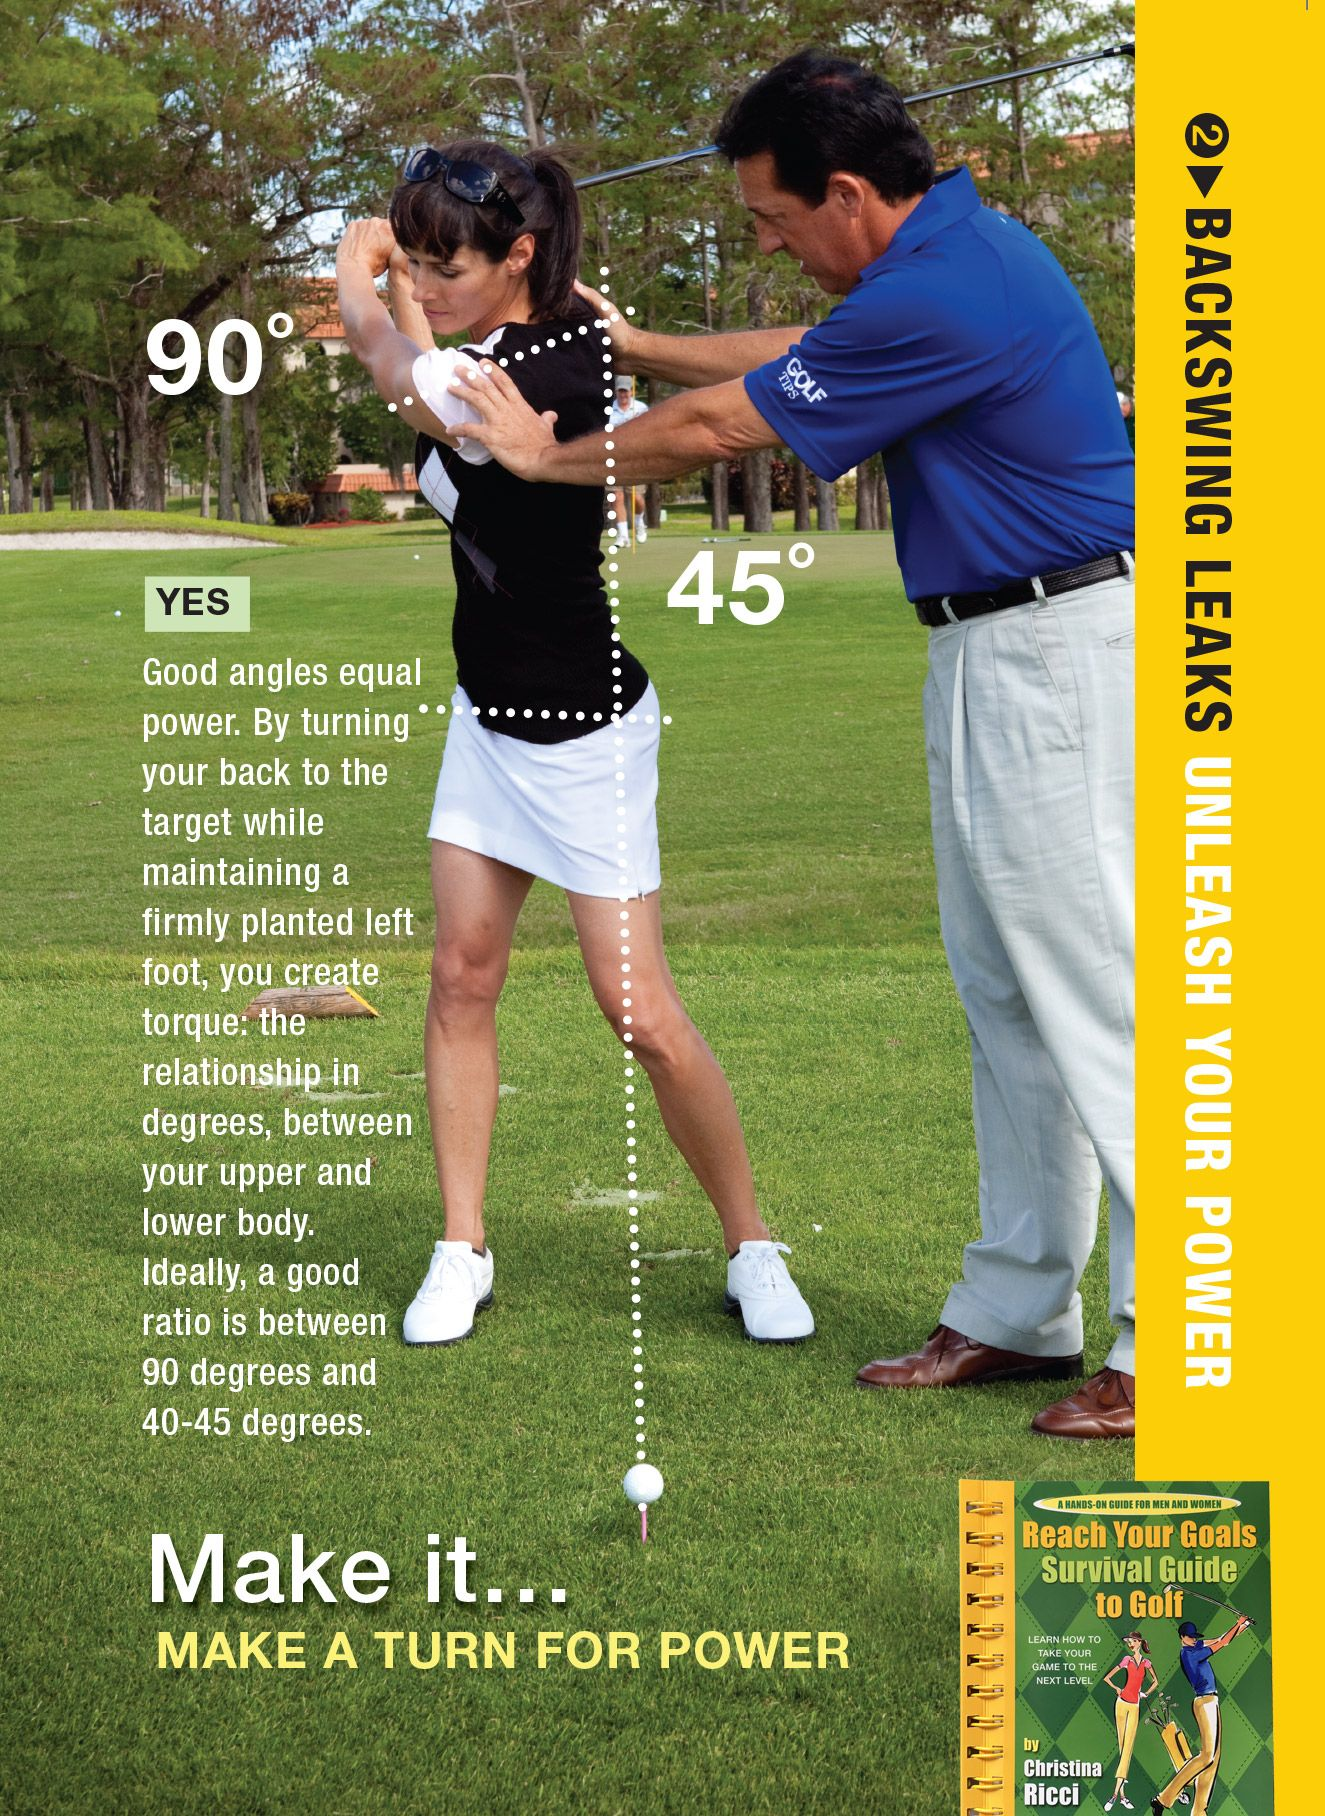 Get more pars with a focus on making a full backswing